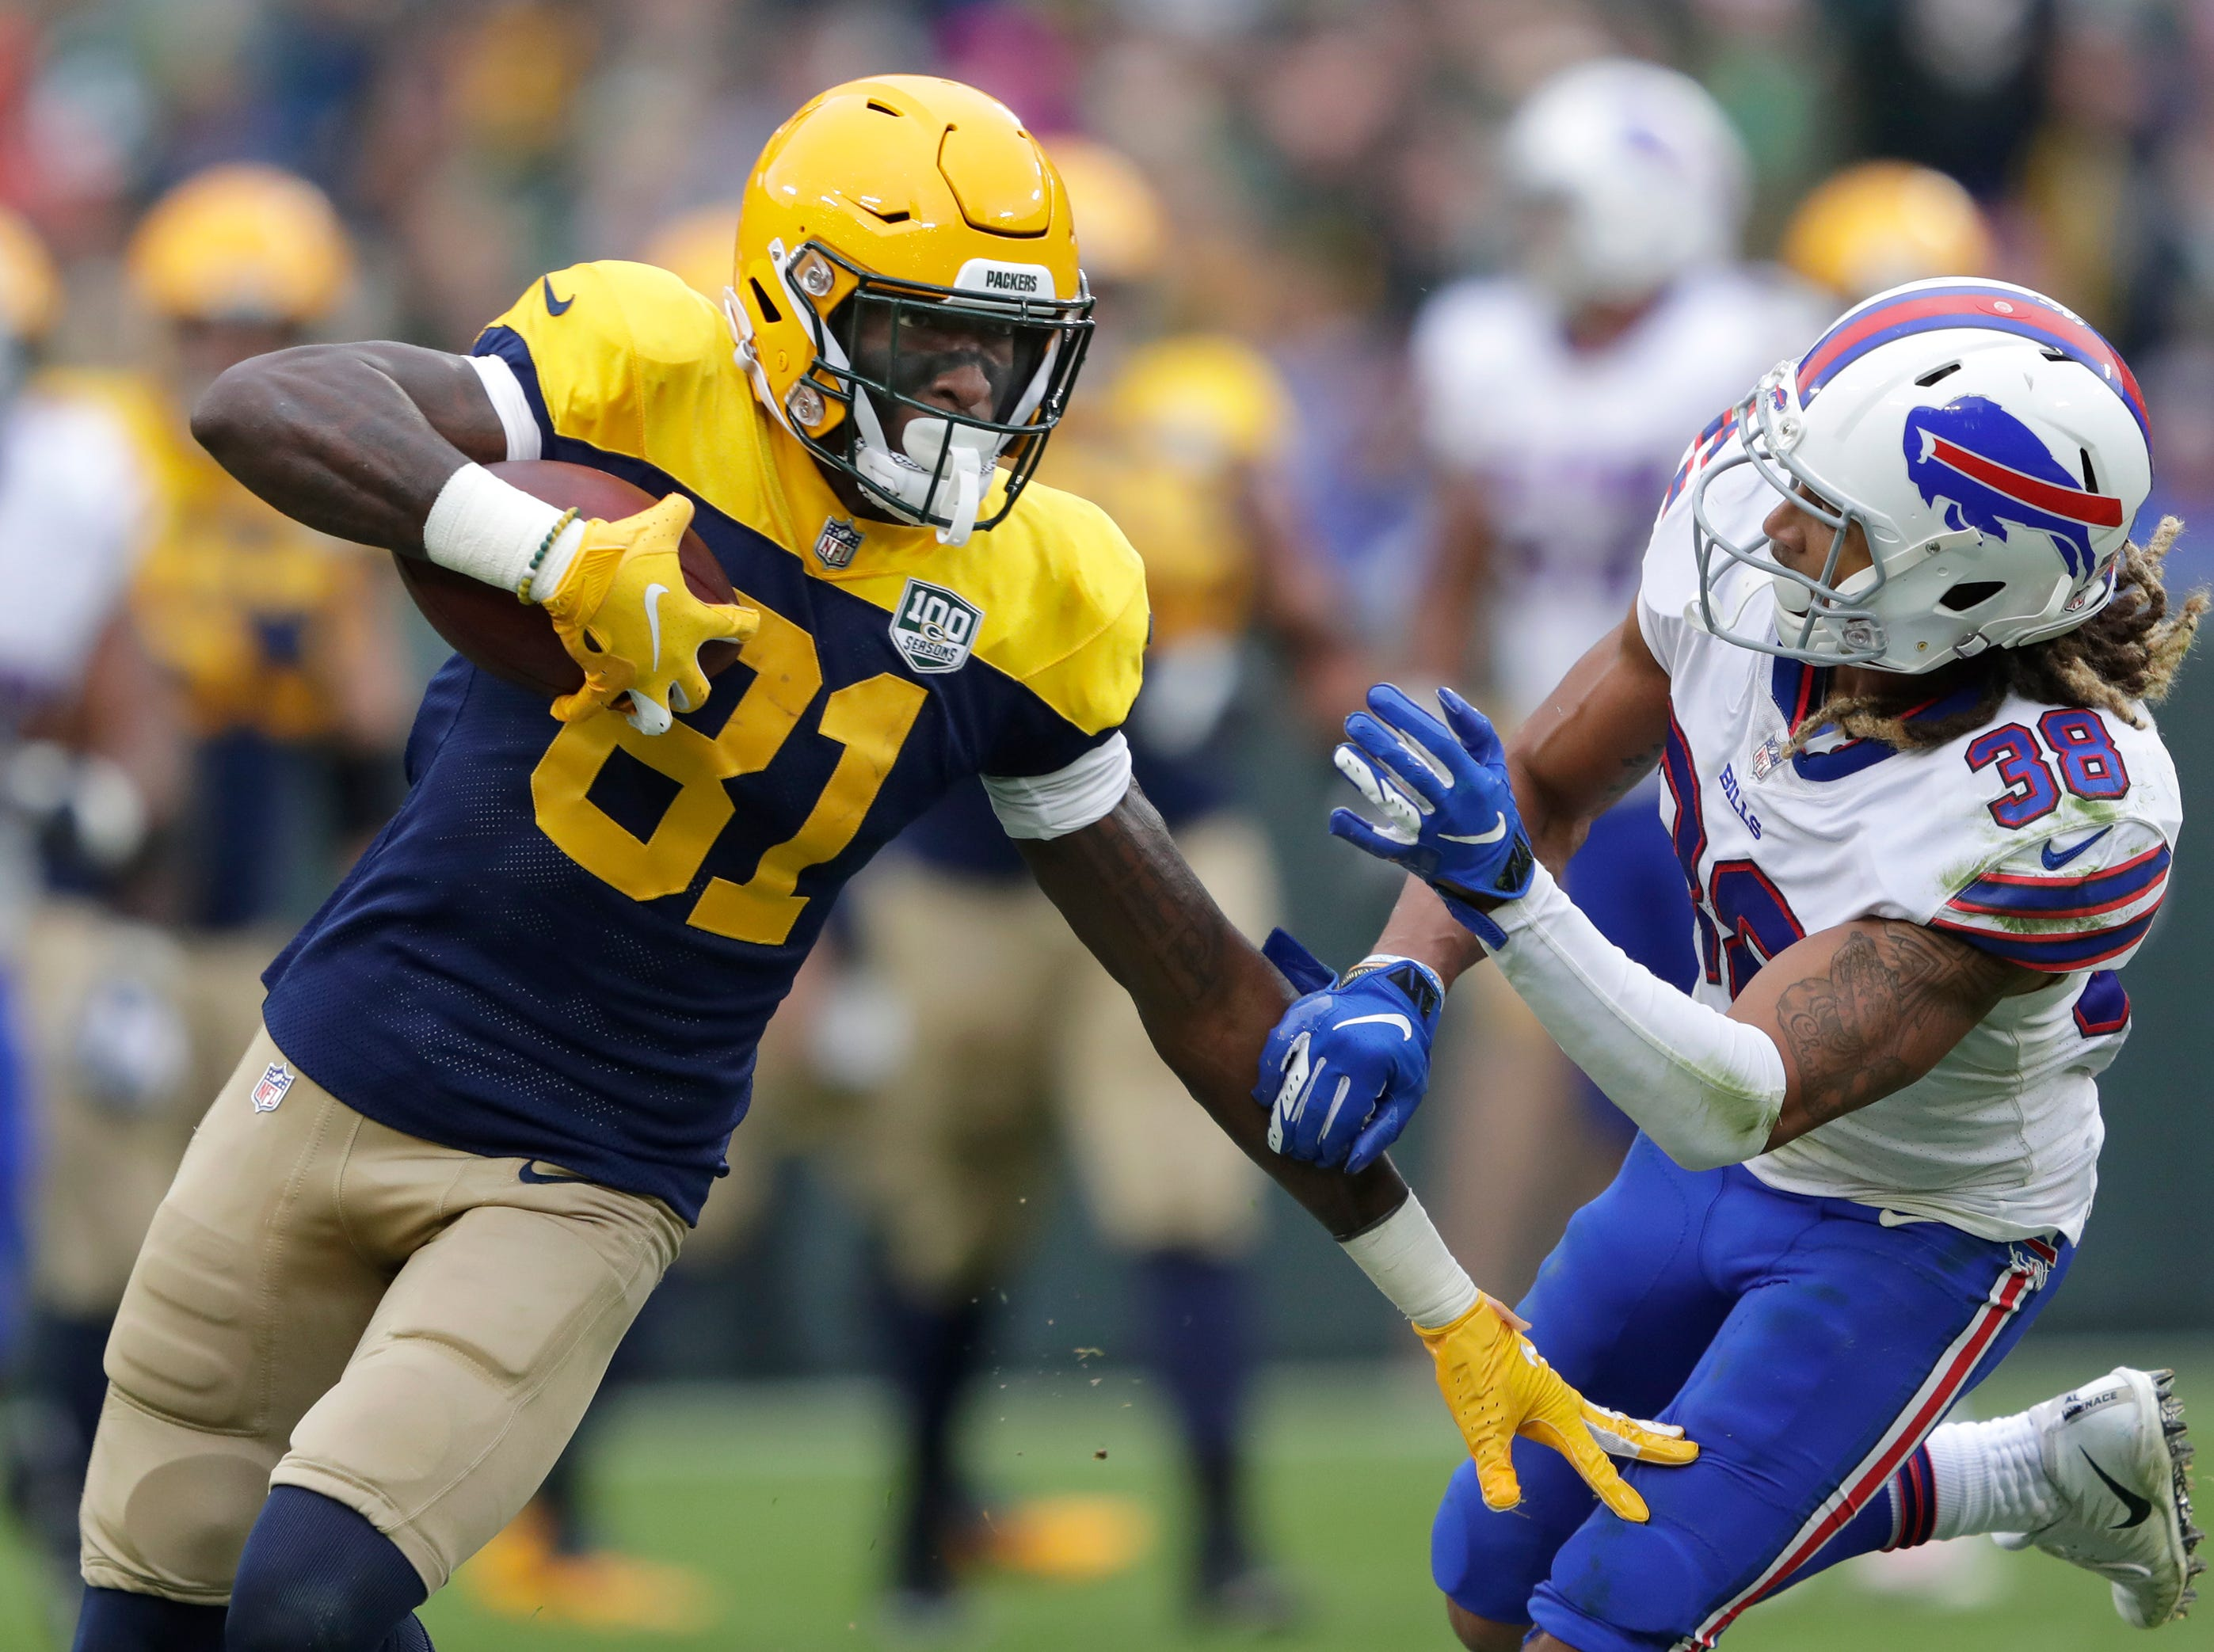 Green Bay Packers wide receiver Geronimo Allison (81) runs after a long gain against Buffalo Bills defensive back Ryan Lewis (38) in the third quarter during their football game Sunday, Sept. 30, 2018, at Lambeau Field in Green Bay, Wis. 